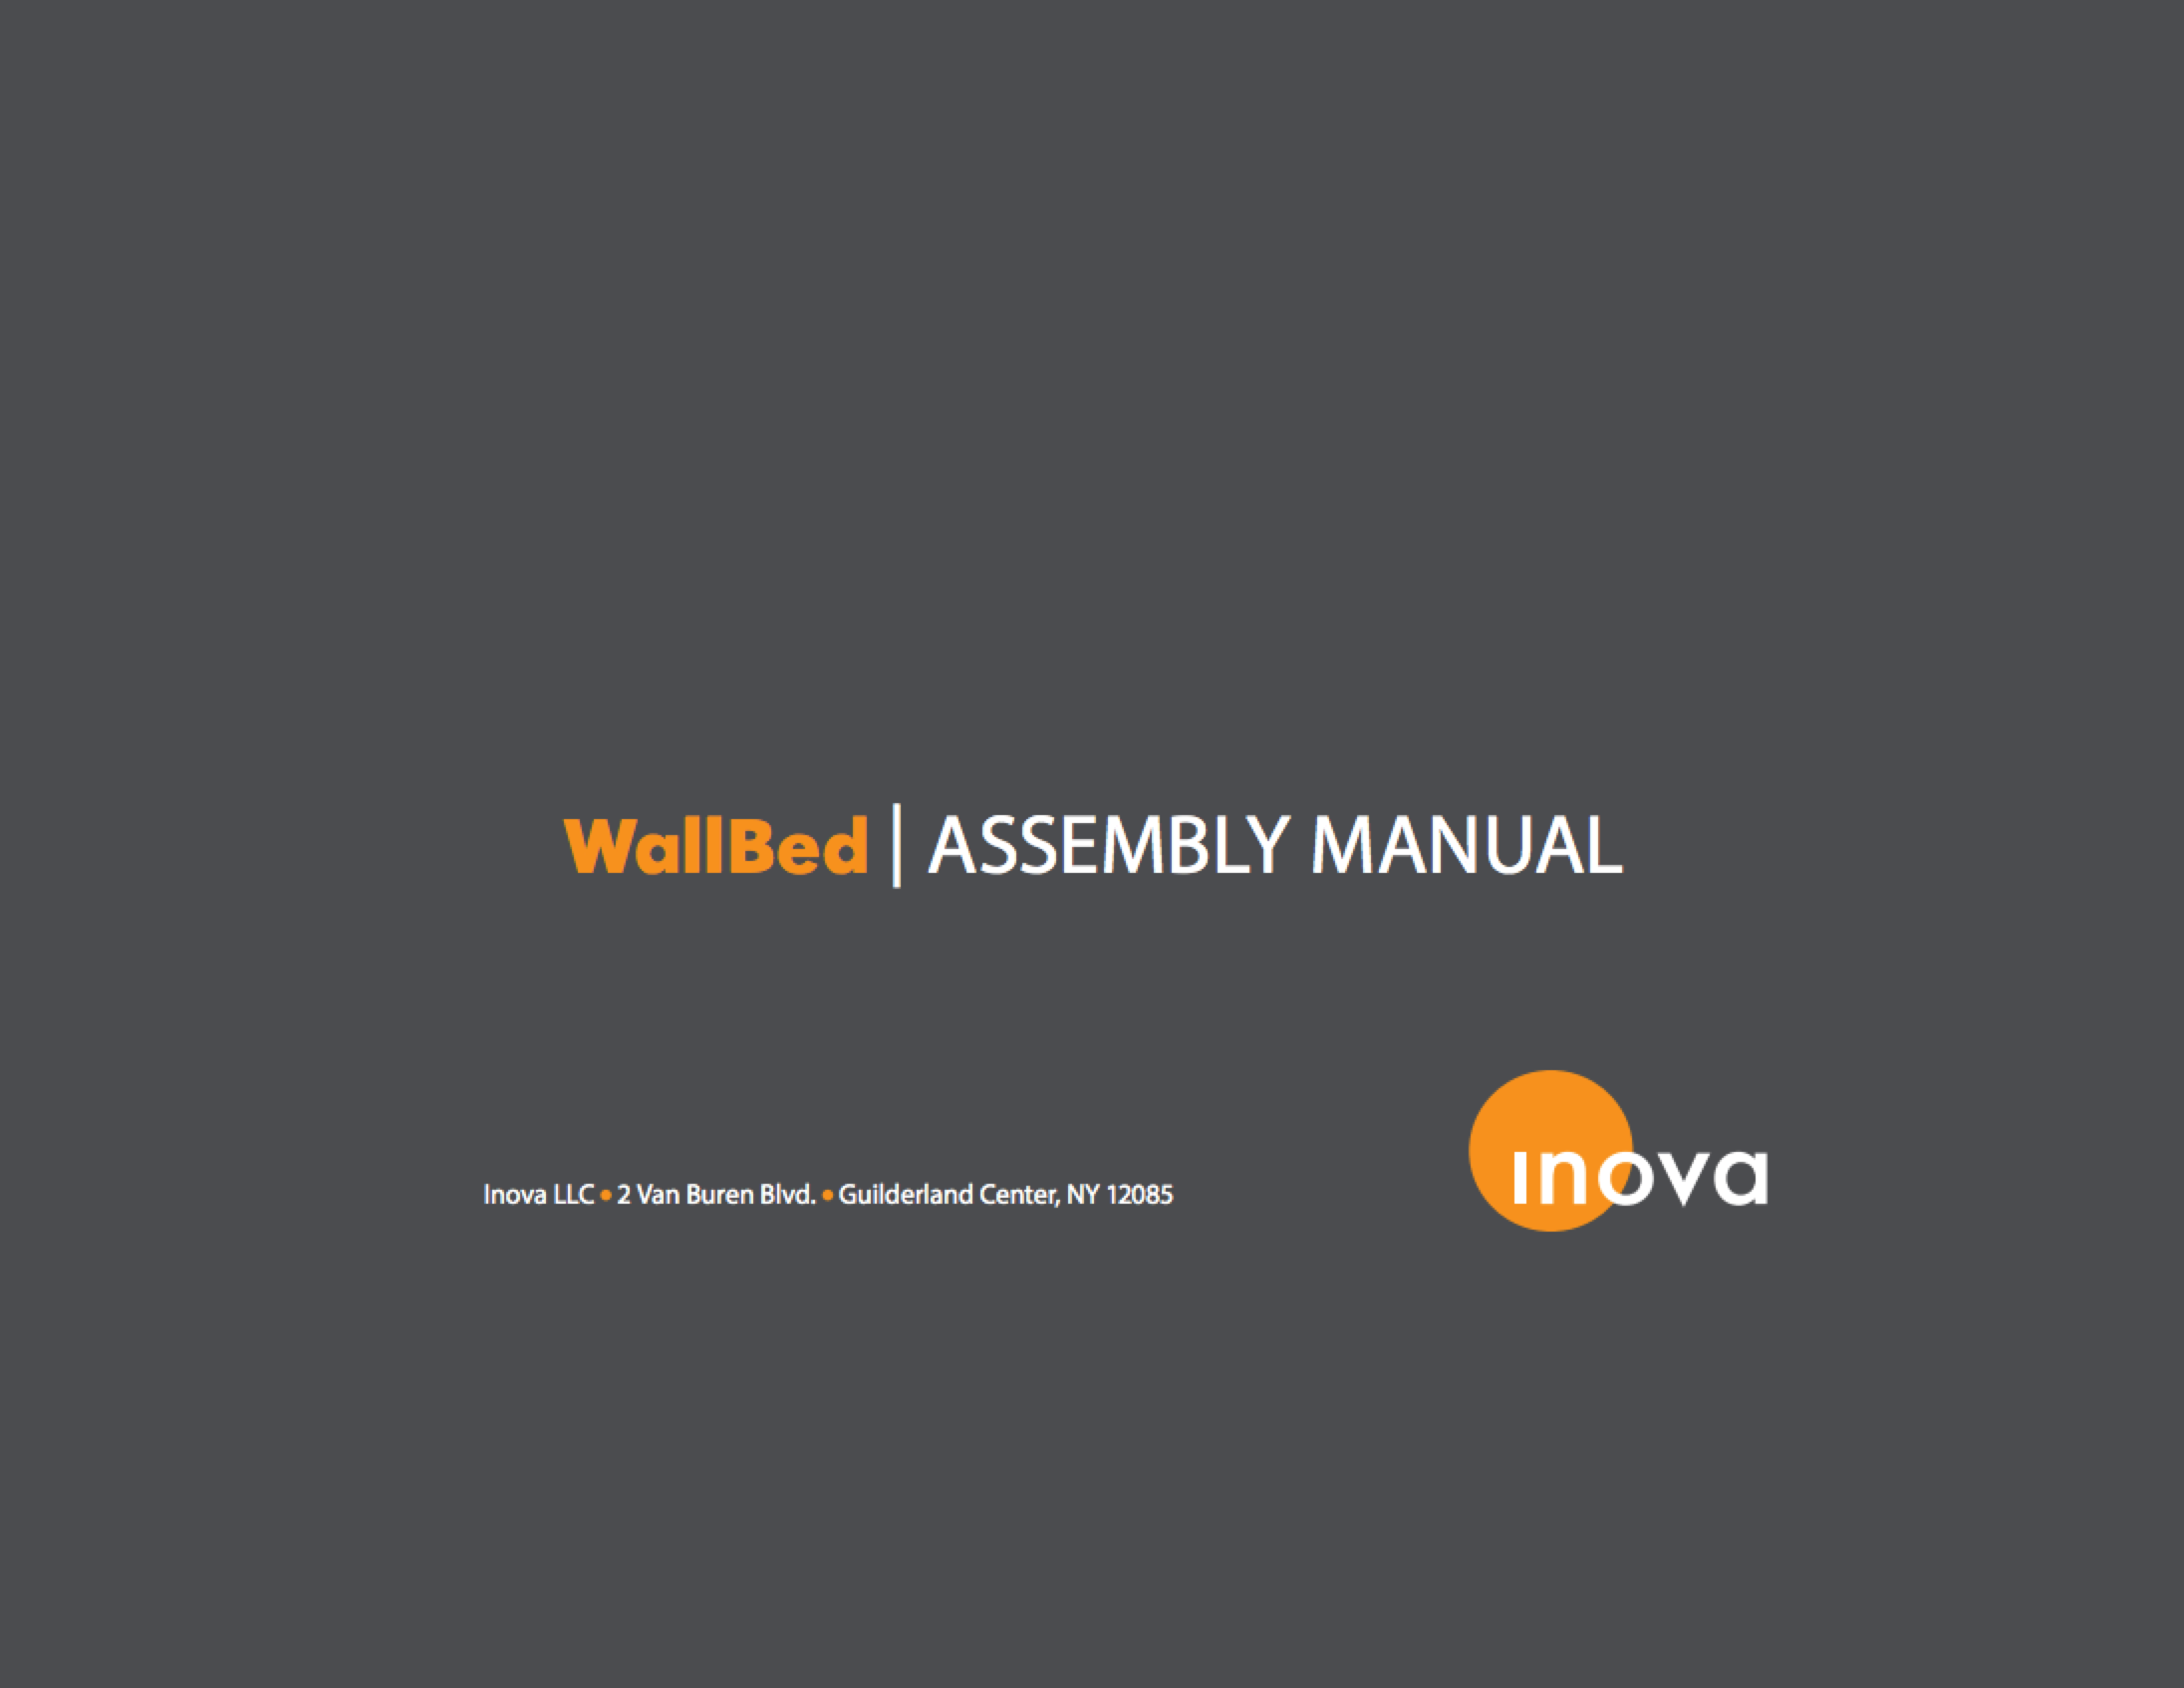 WallBed Assembly Manual